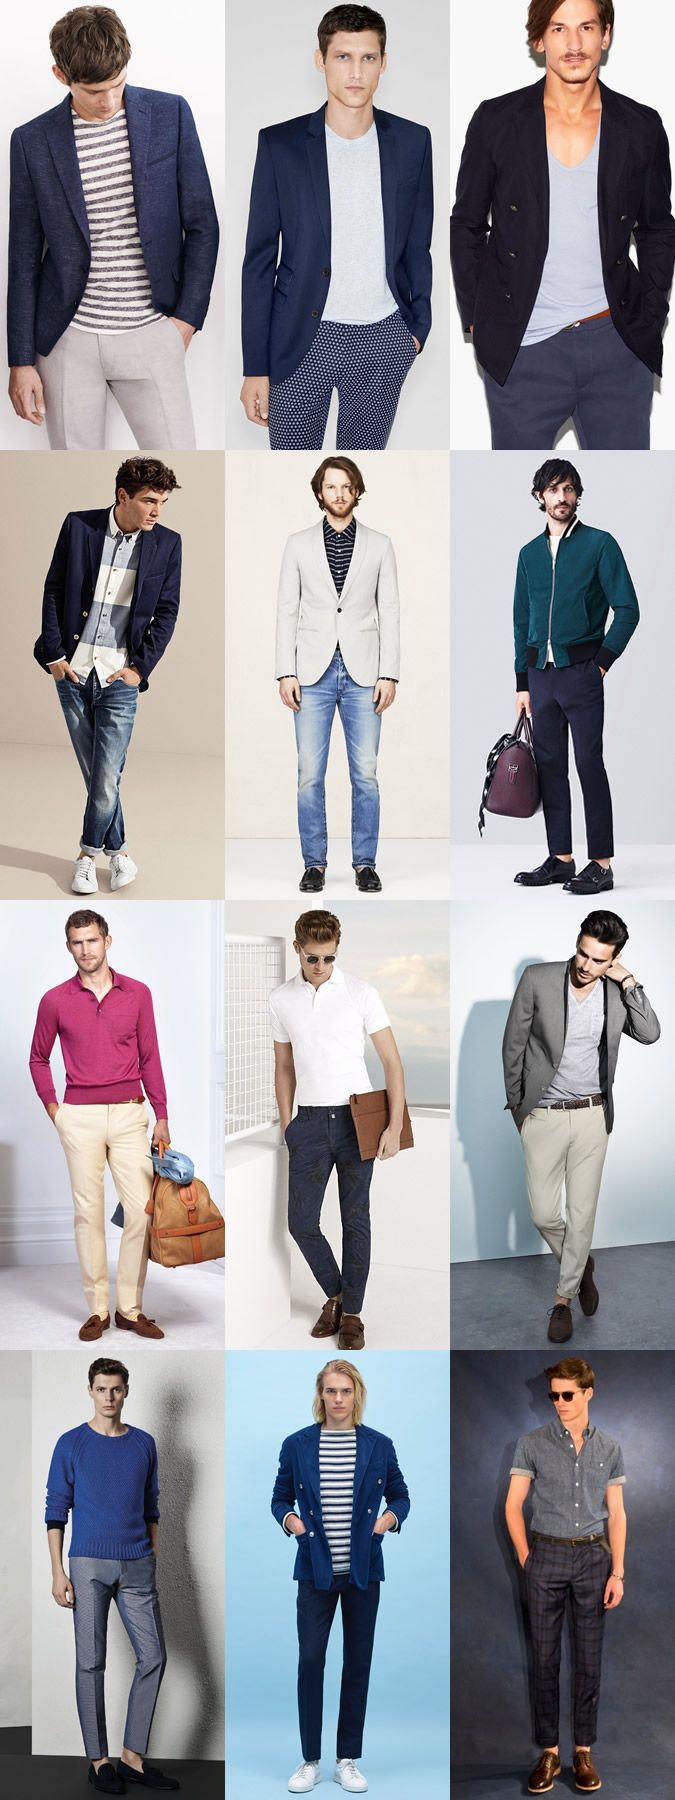 Men S Dress Down Friday Outfit Examples Using Separates